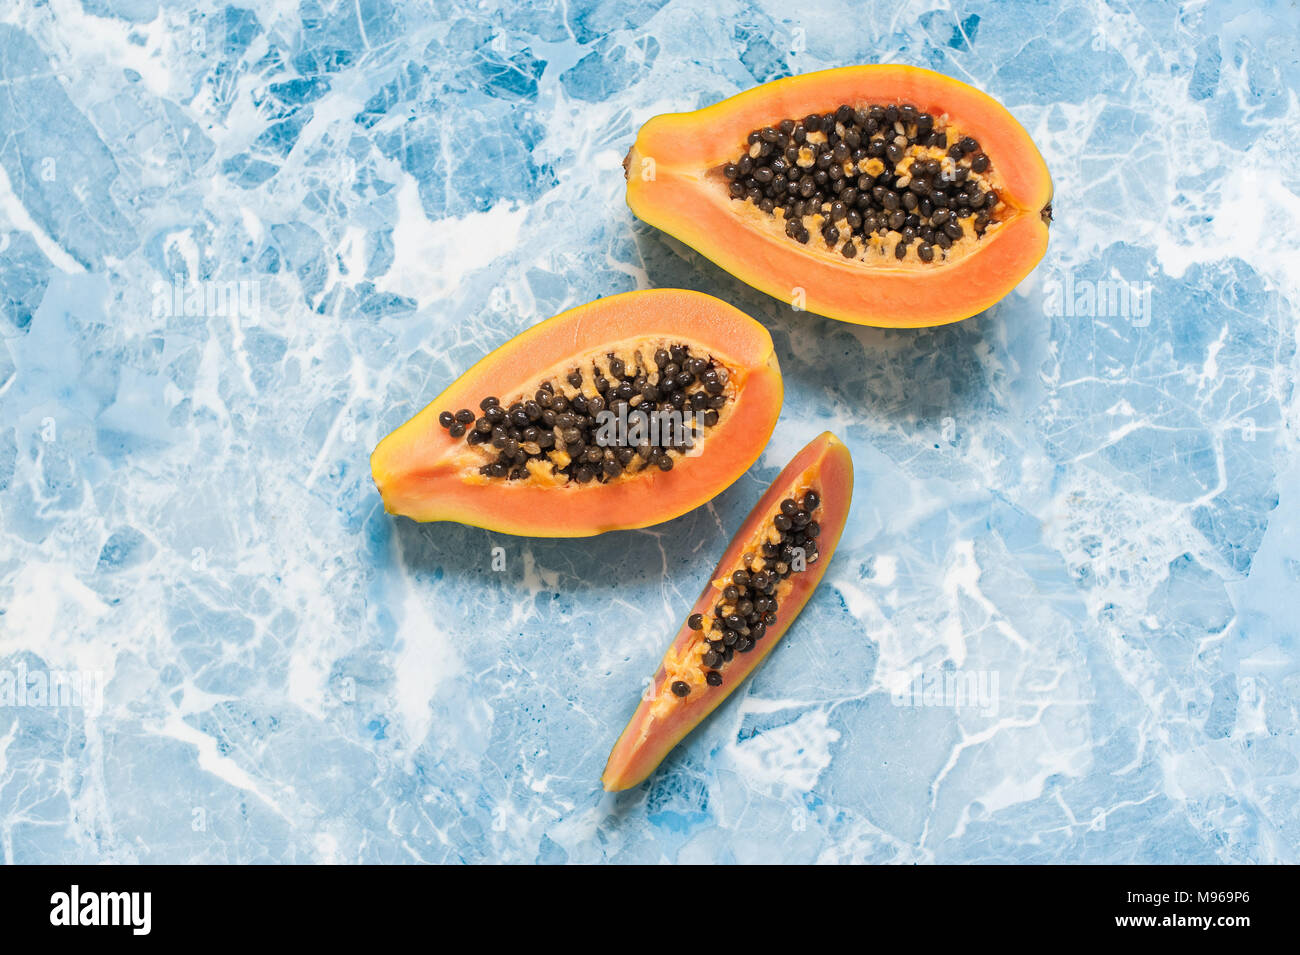 Juicy slices of ripe papaya on a blue background. Exotic fruits, healthy food. - Stock Image